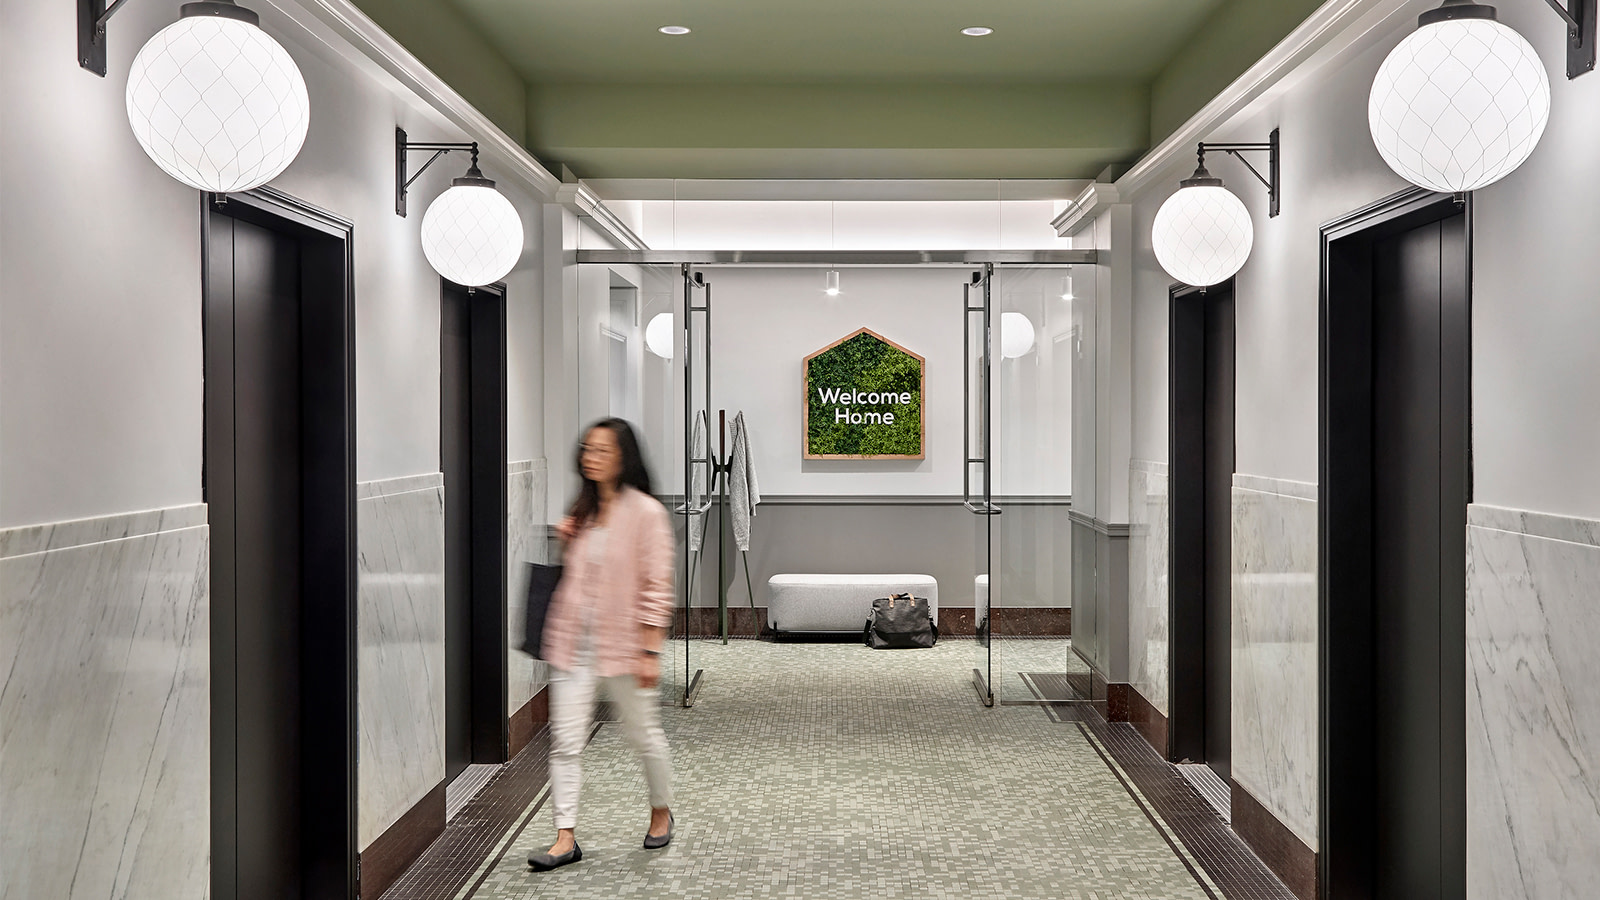 The Elevator Lobby at Home Chef's Chicago headquarters